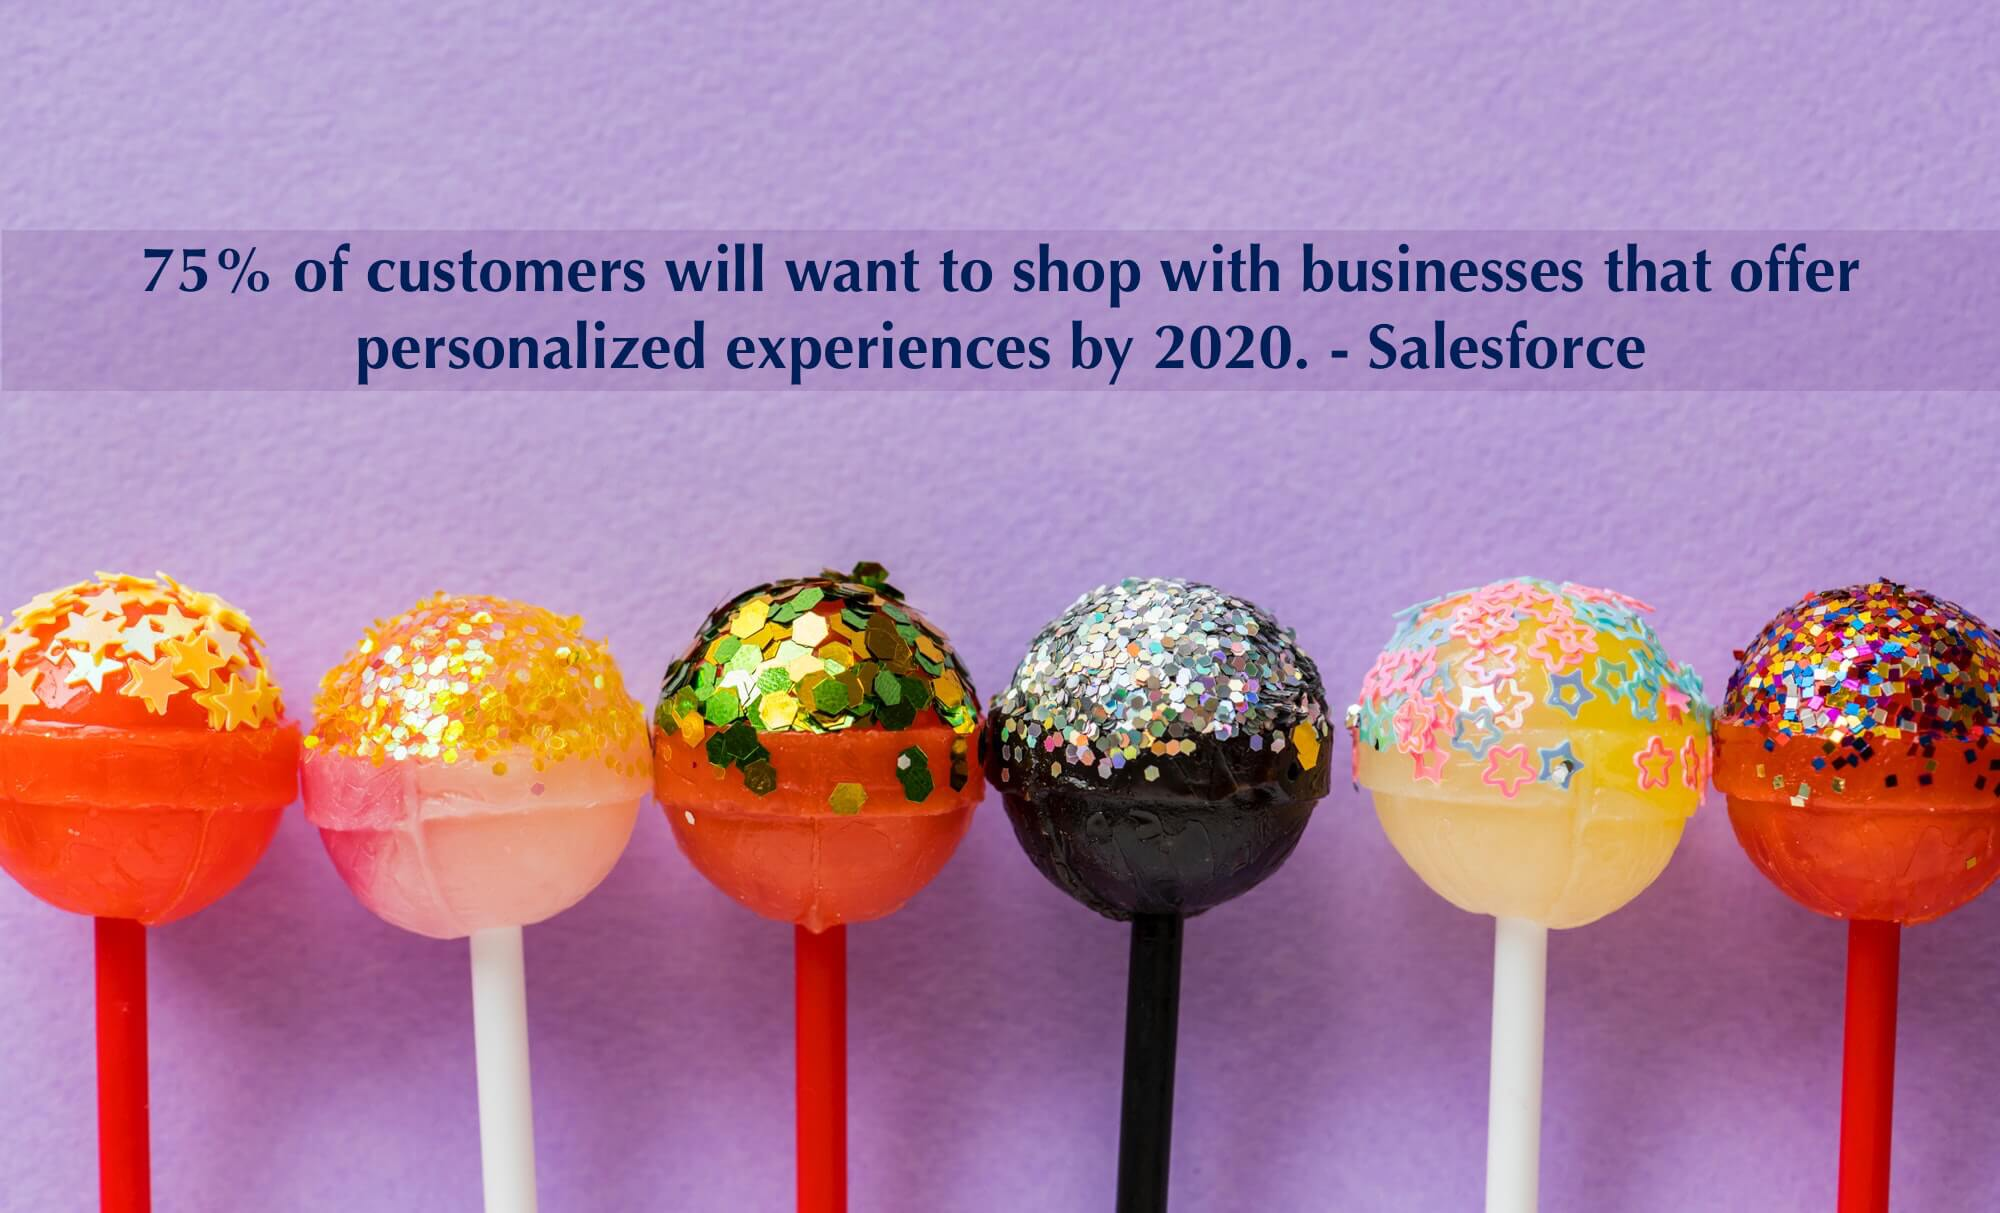 75% of customers will want to shop with businesses that offer personalized experiences by 2020. - Salesforce